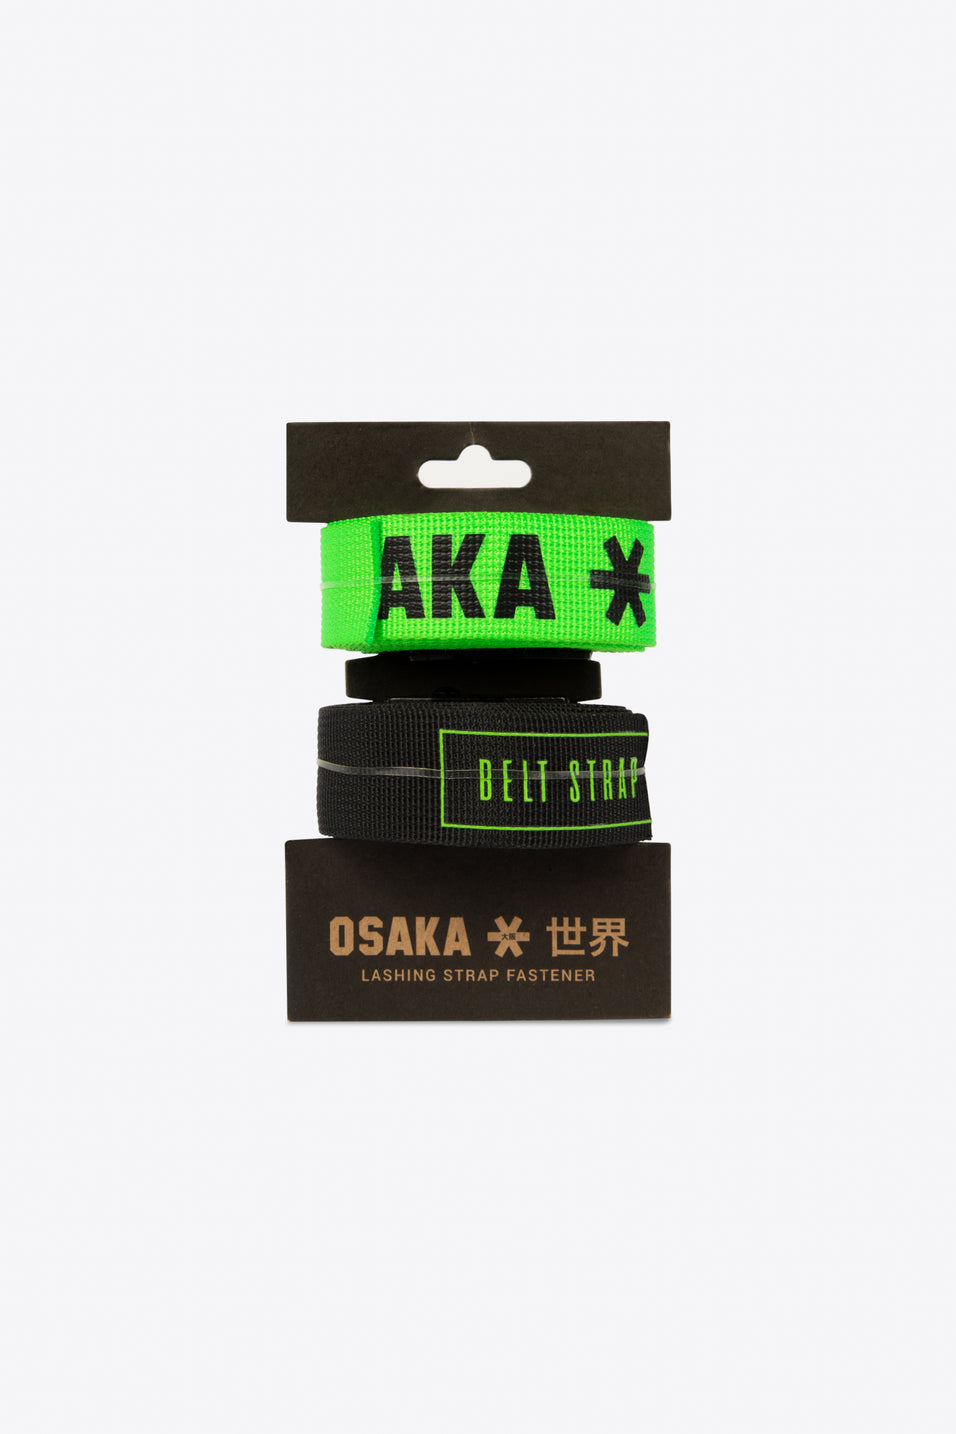 osaka hockey accessories and gadget